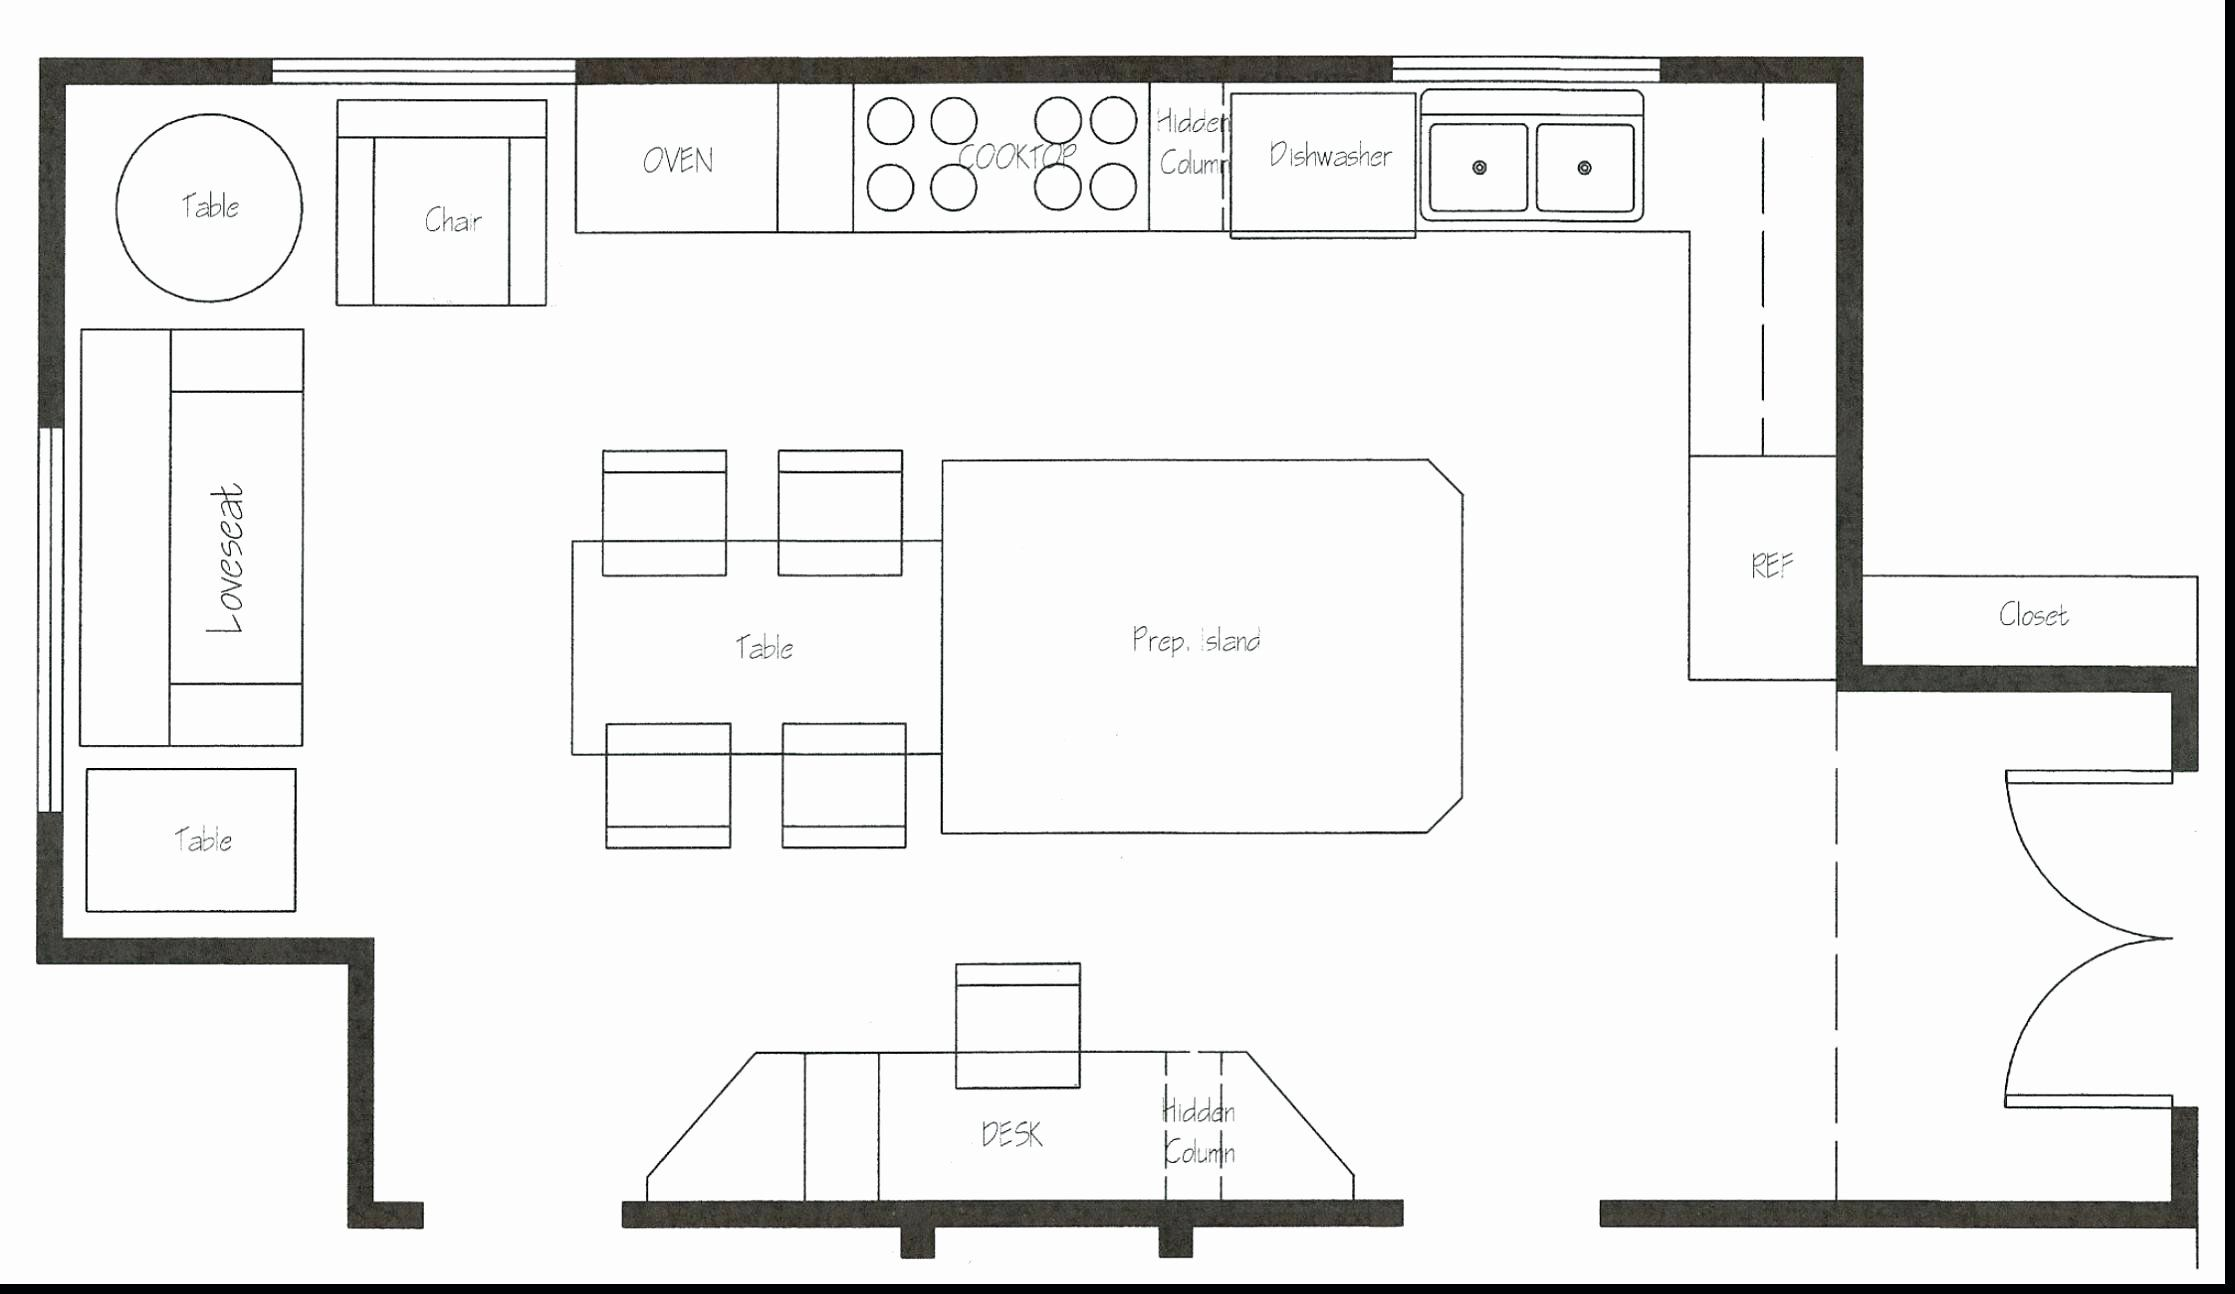 Restaurant Seating Chart Template Excel Awesome Restaurant Table ...